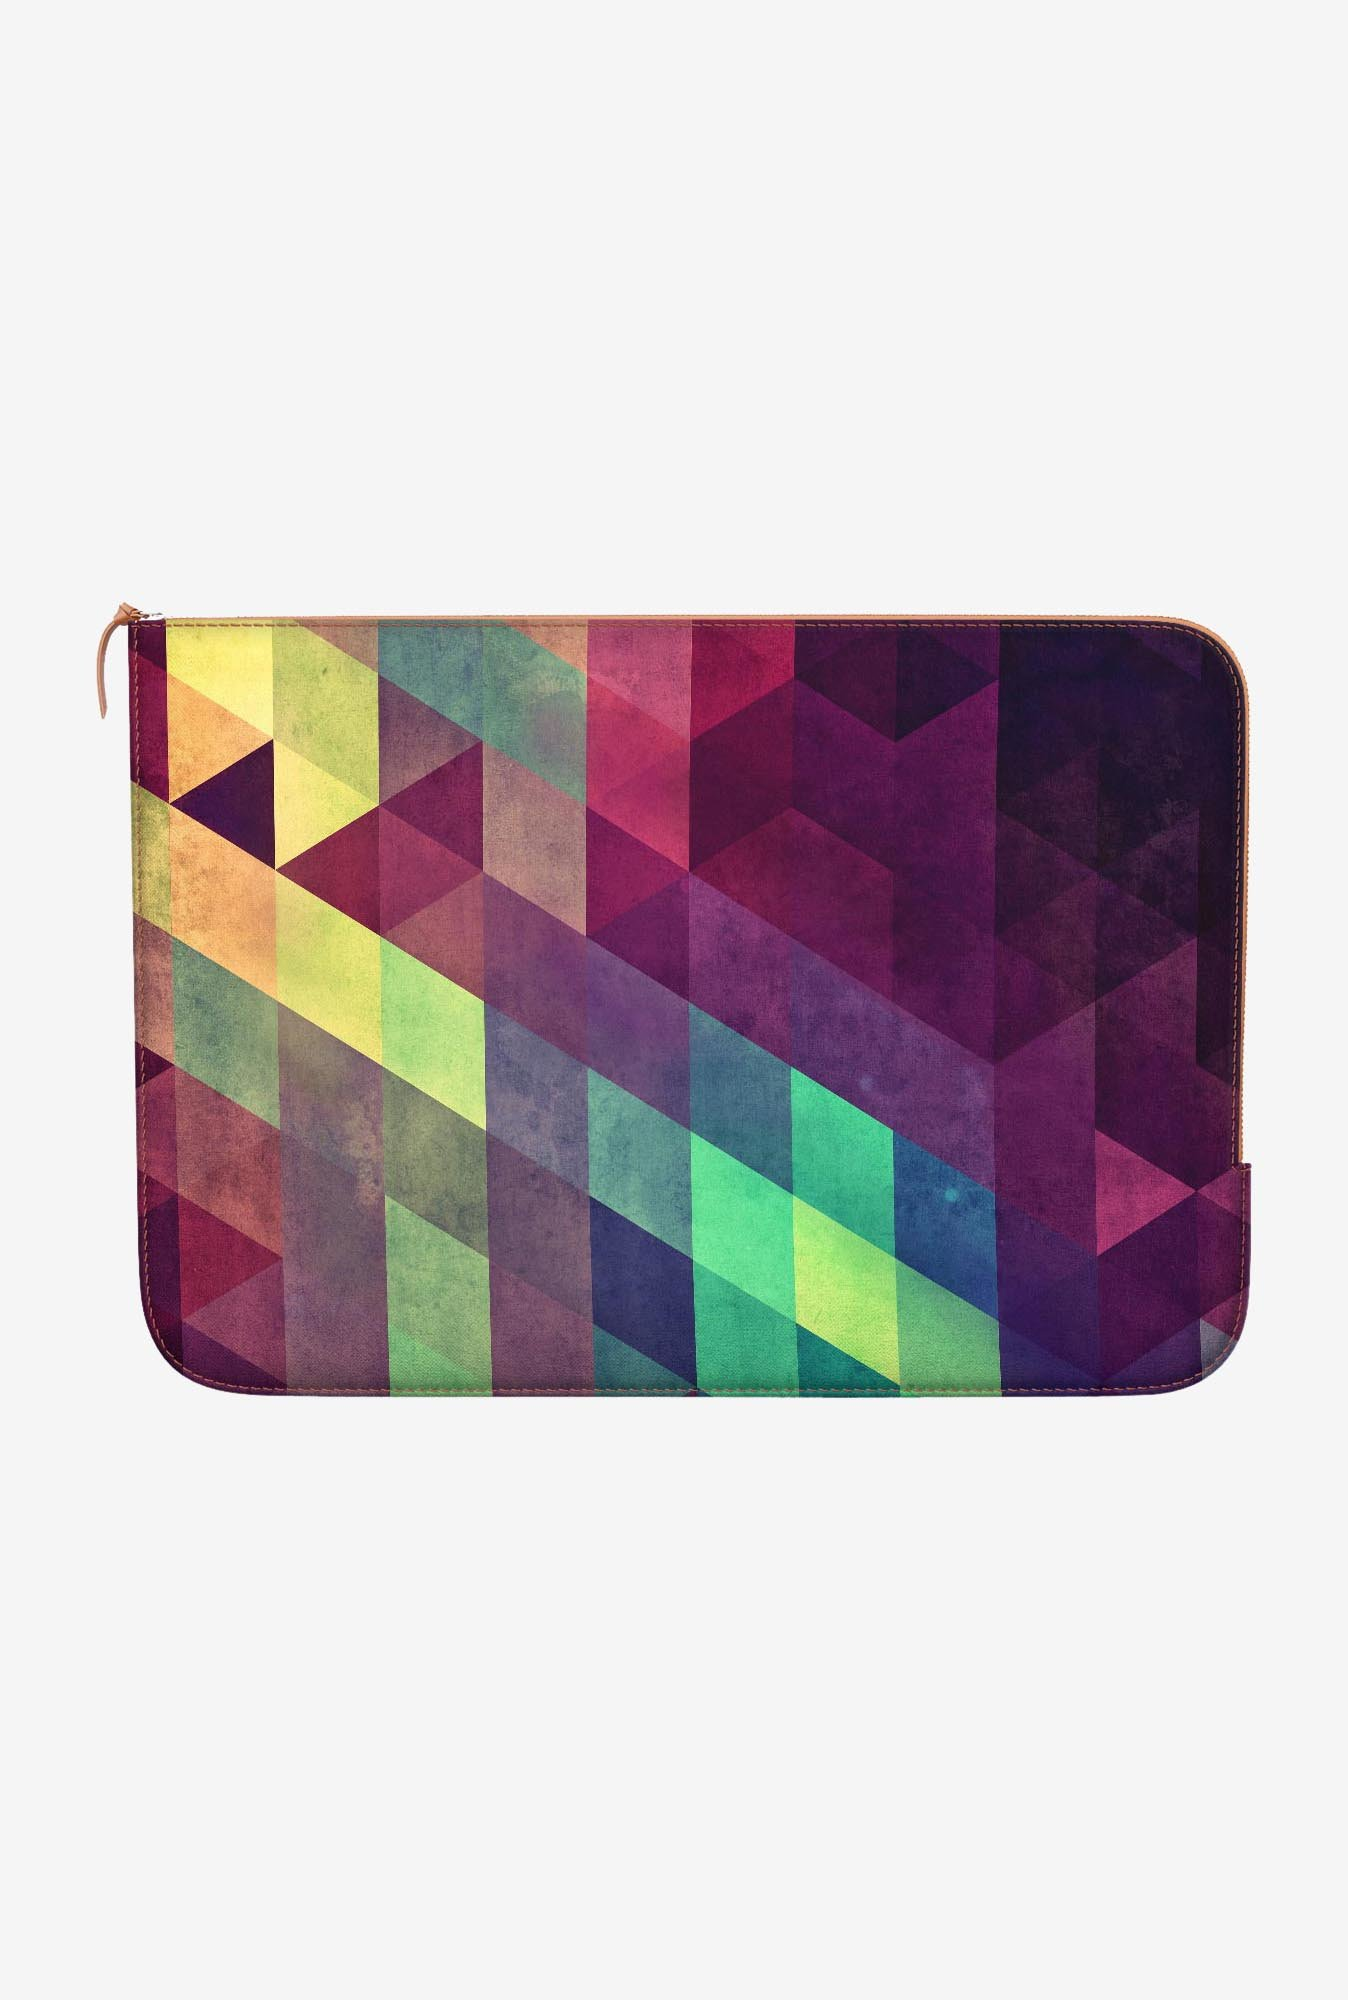 DailyObjects Vynnyyrx Hrxtl MacBook Air 11 Zippered Sleeve